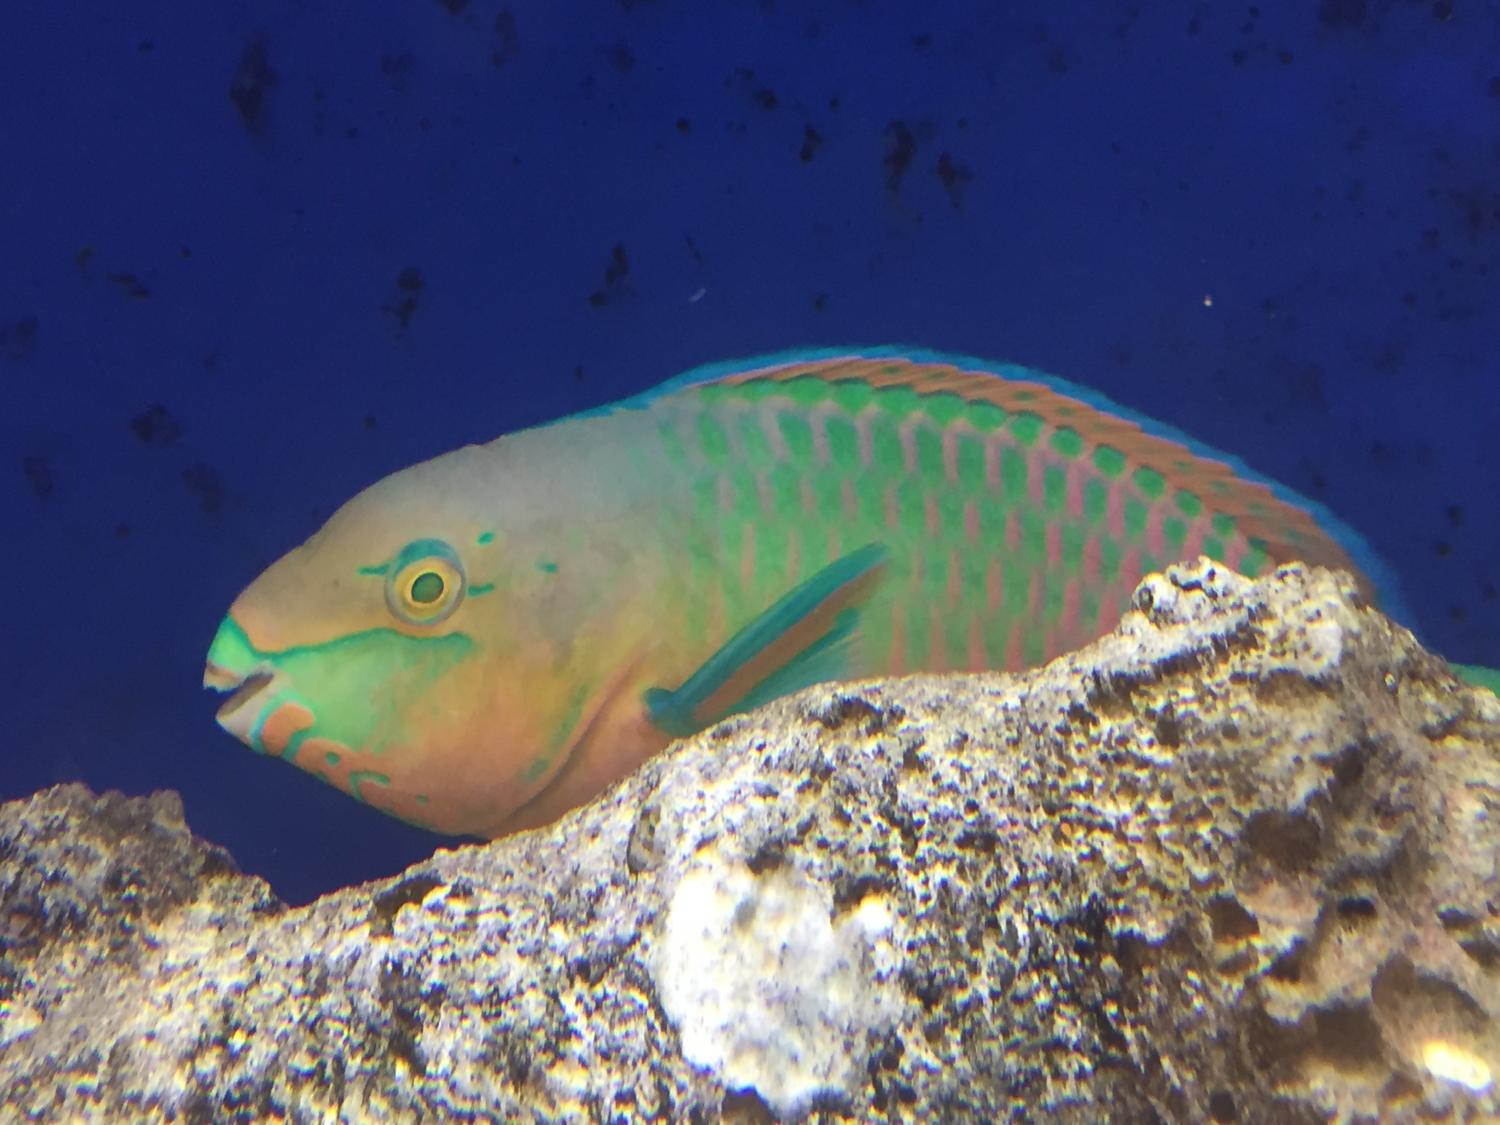 As fins evolve to help fish swim, so does the nervous system